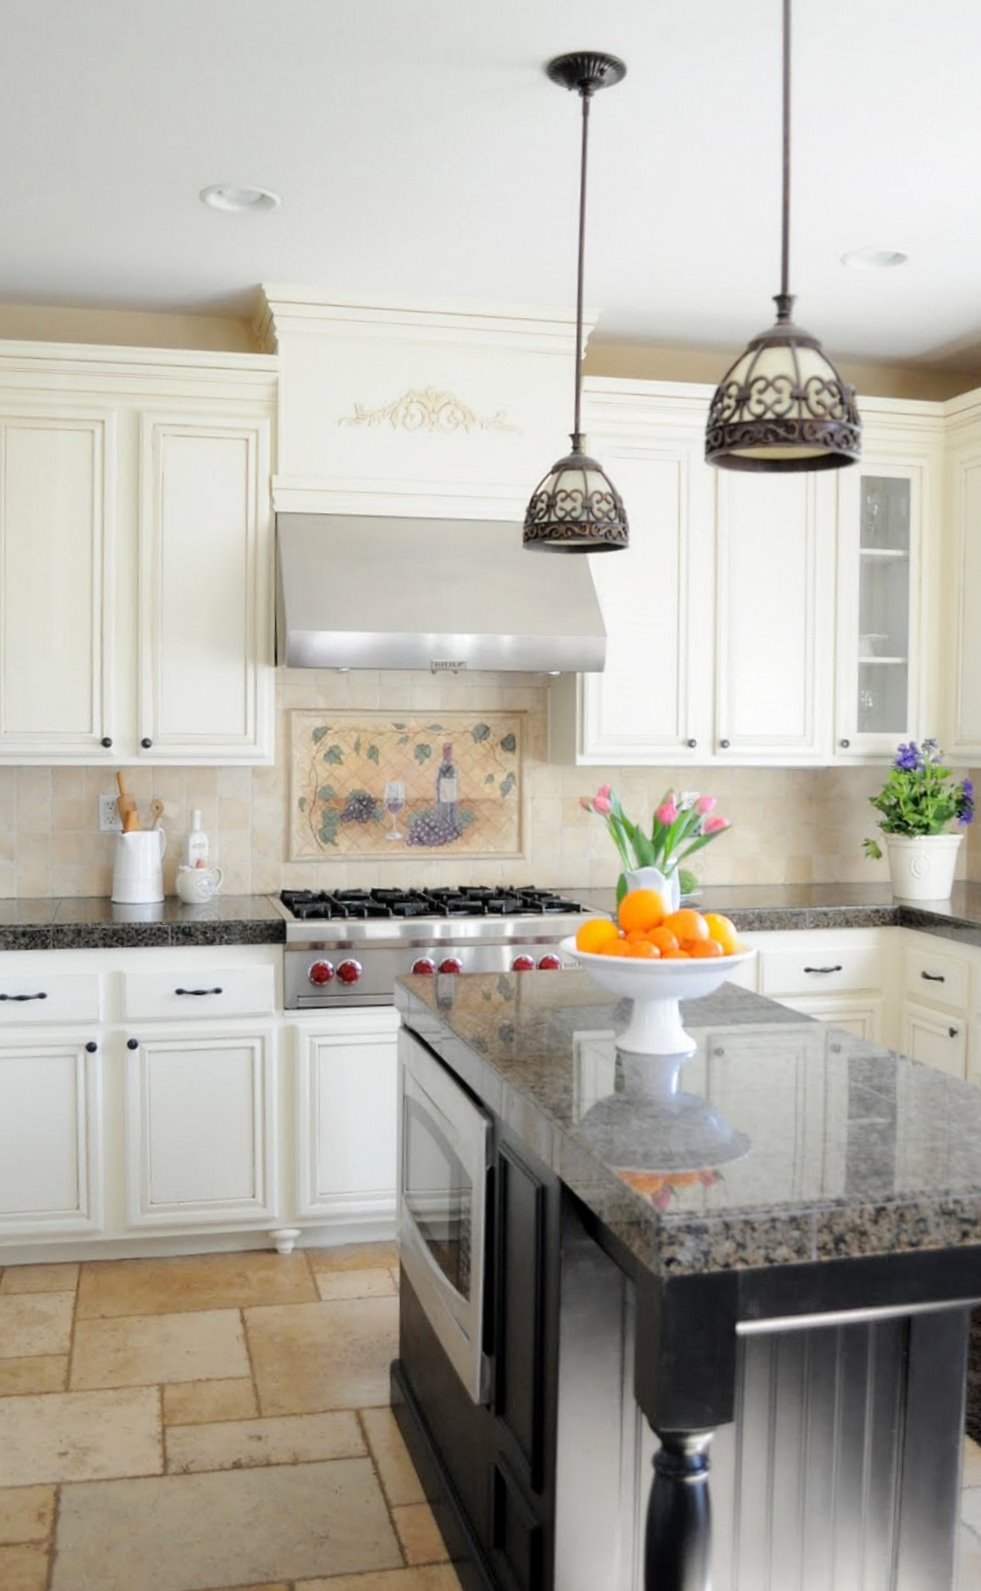 painting oak kitchen cabinets | Turning a kitchen island into a piece of furniture - My ...